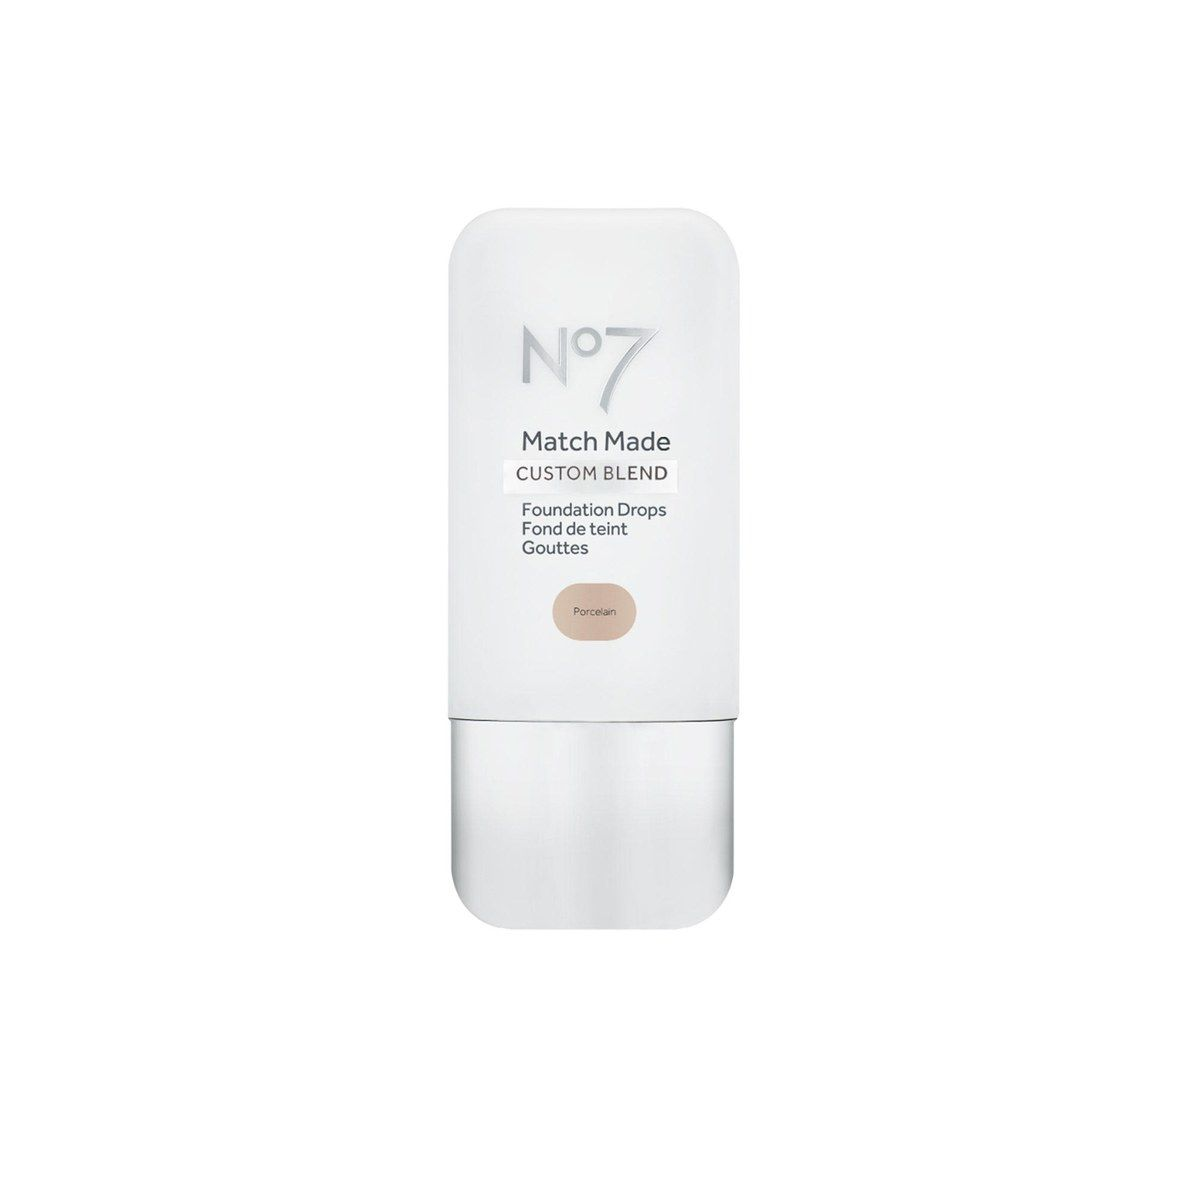 492438693da The 37 Best Drugstore Beauty Product Launching in 2019 in 2019 ...